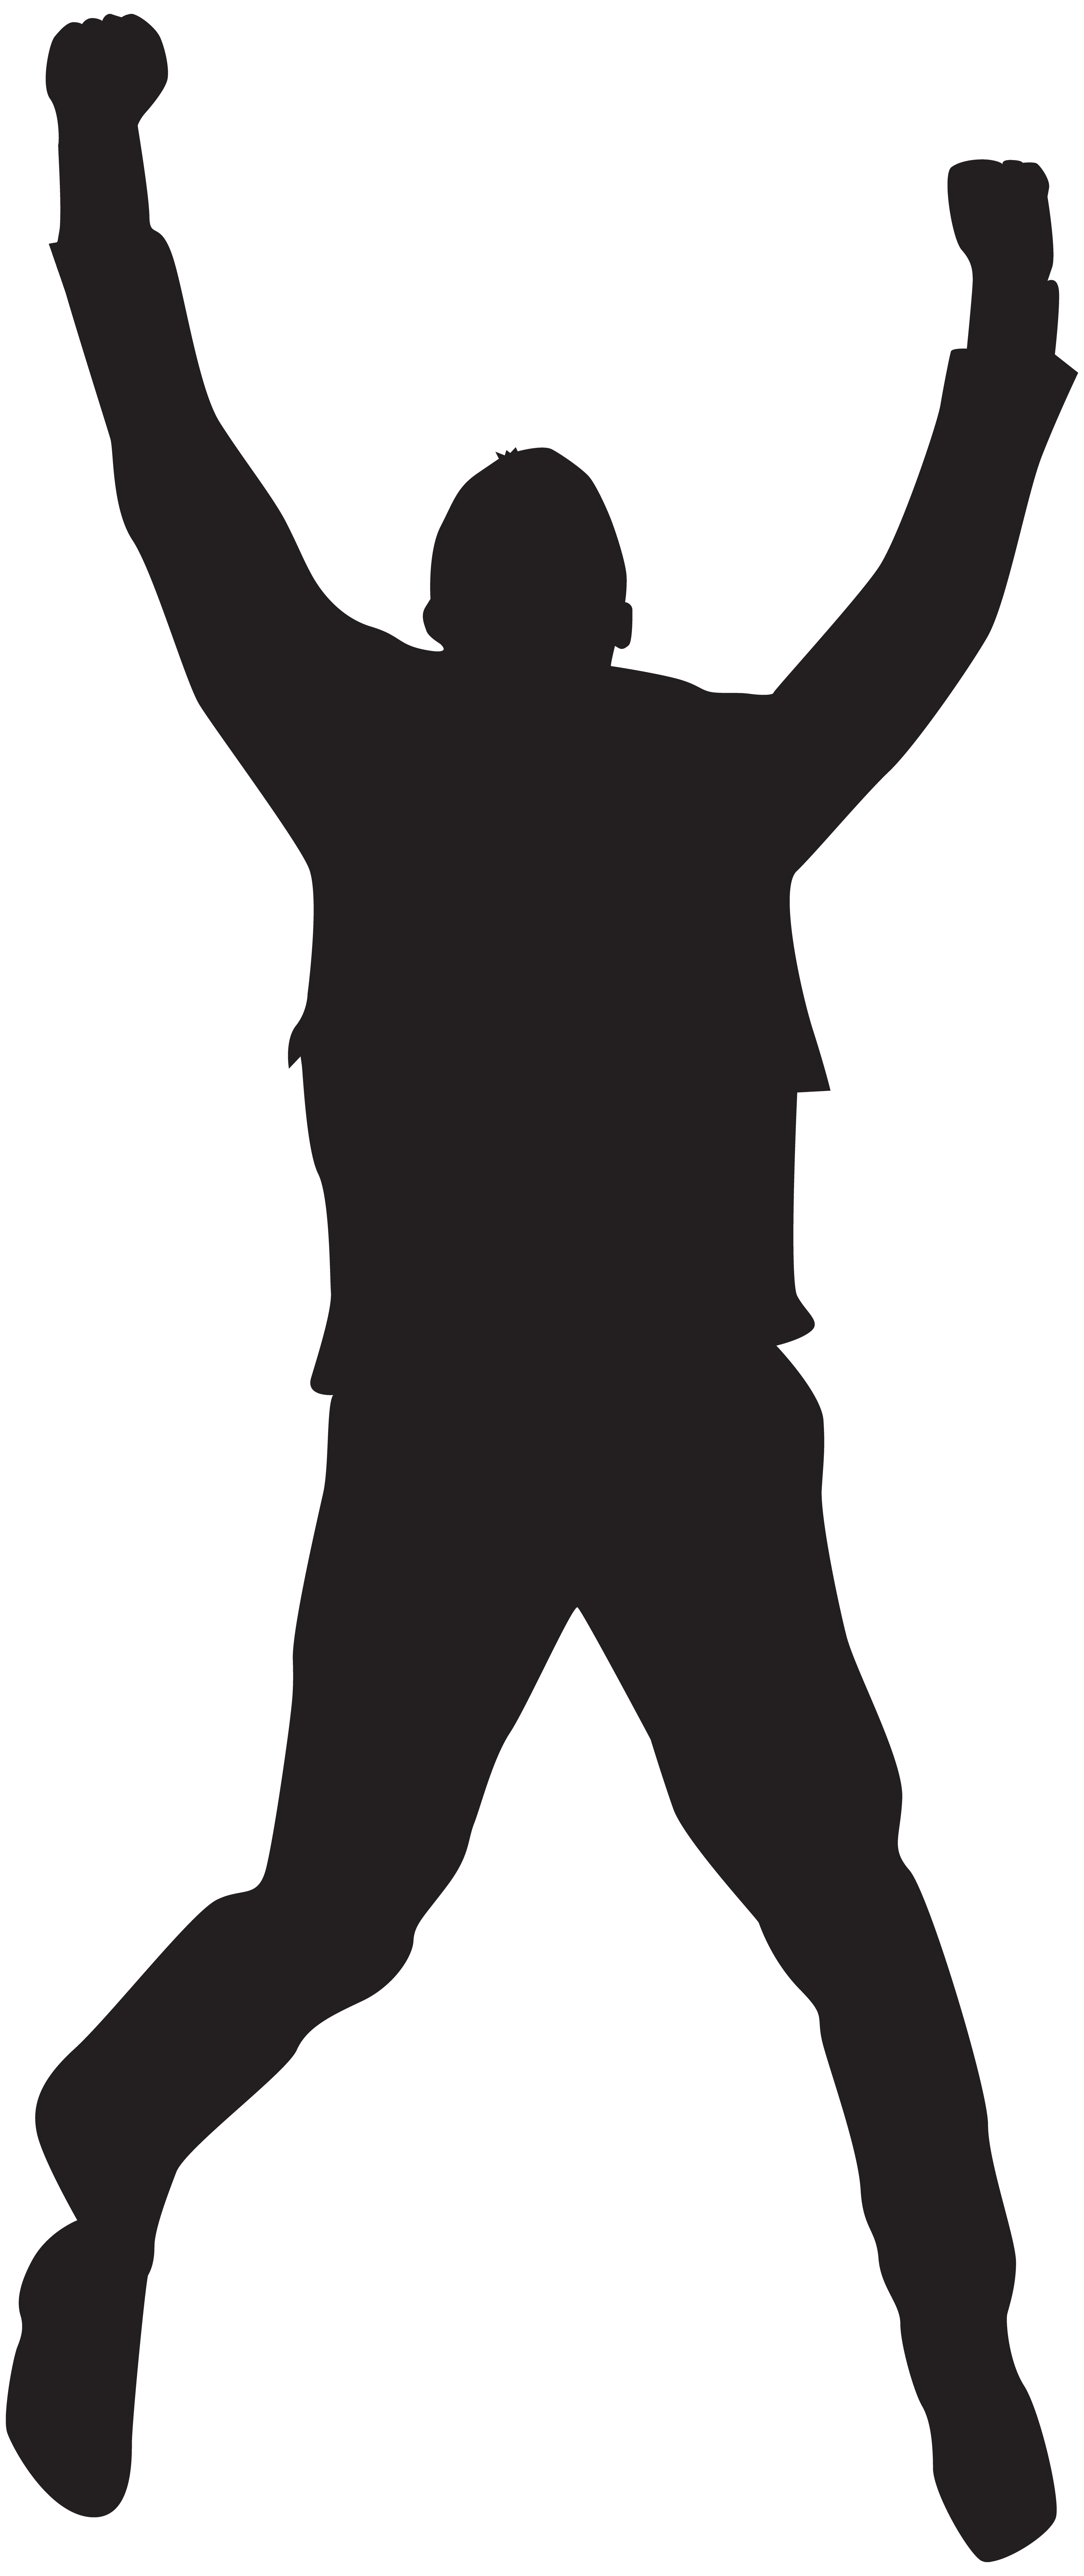 Person Silhouette Clipart at GetDrawings.com | Free for personal use ... png freeuse